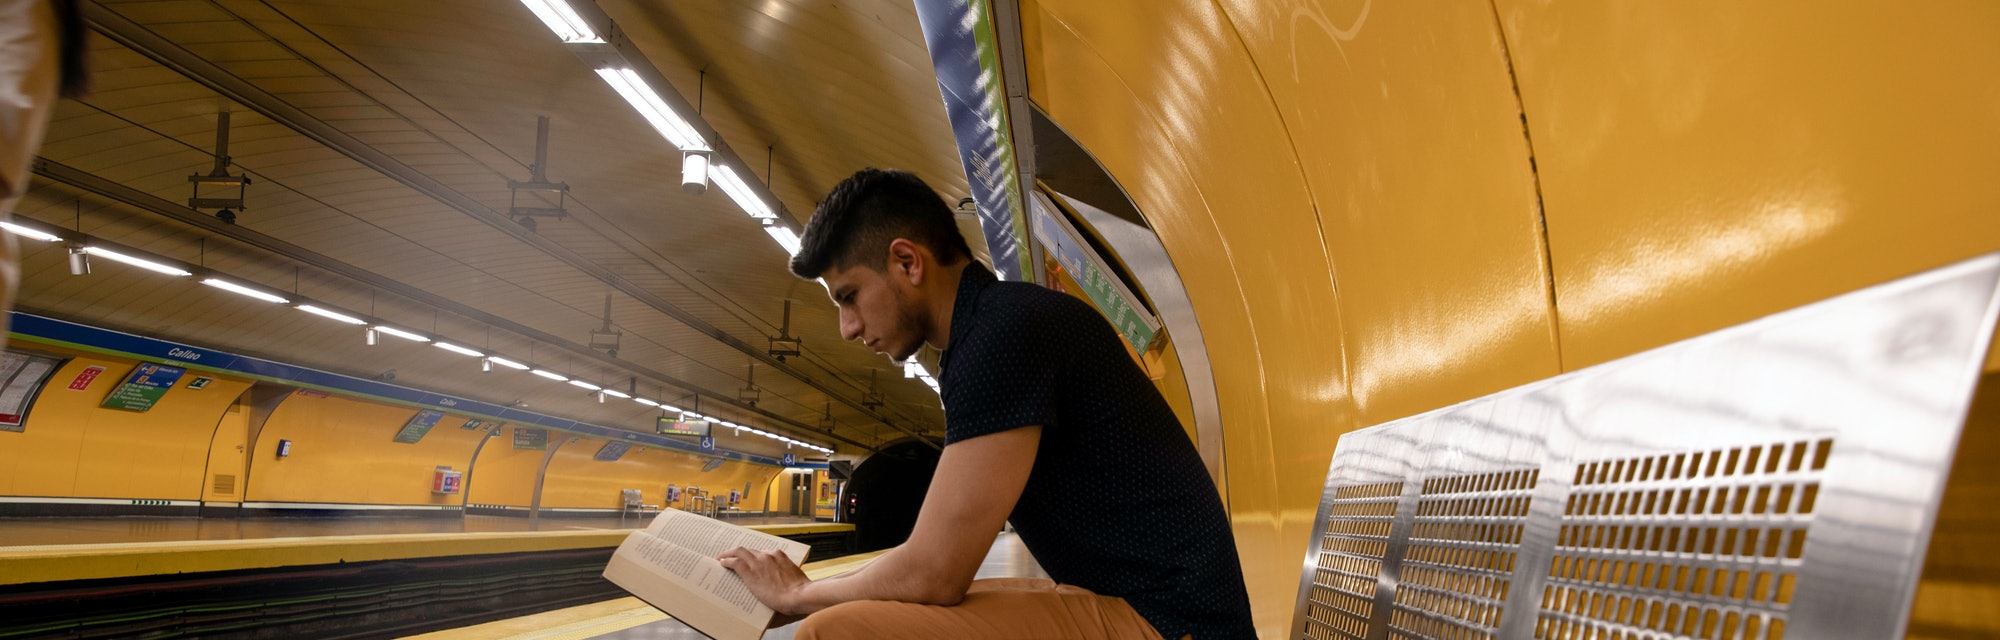 young man reading a book while waiting for the subway at the station